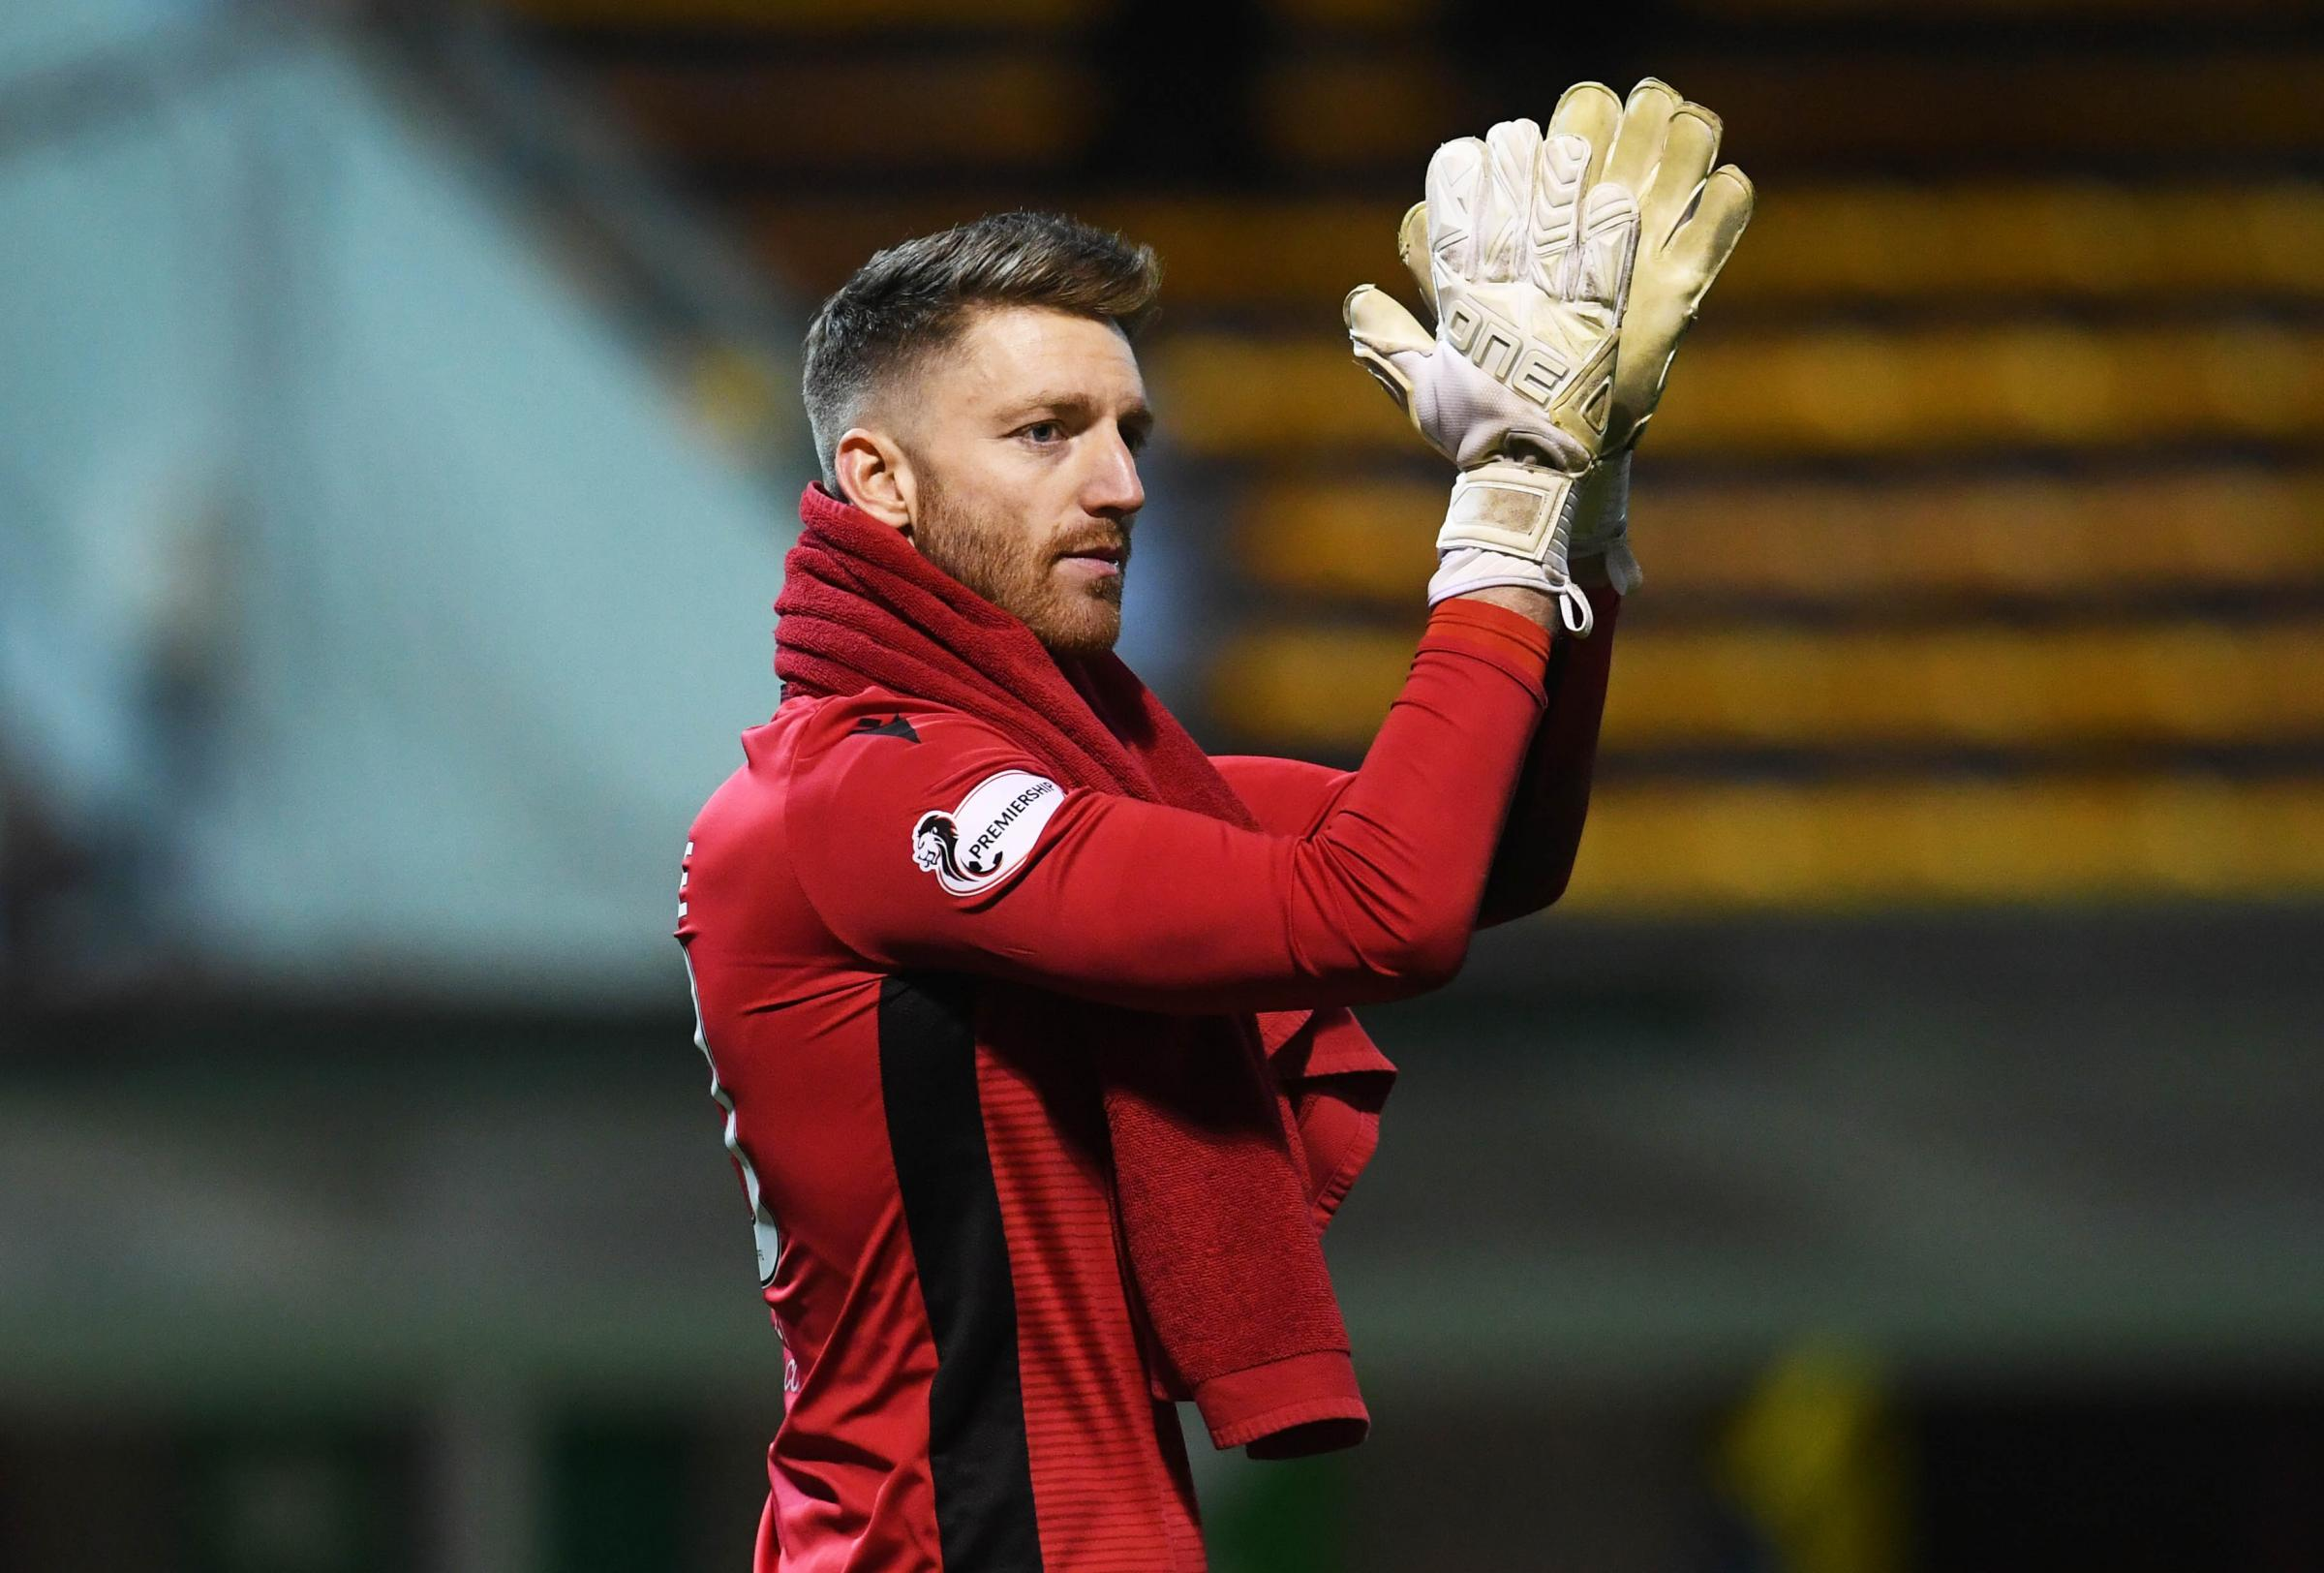 Former Motherwell goalkeeper Mark Gillespie signs for Newcastle United